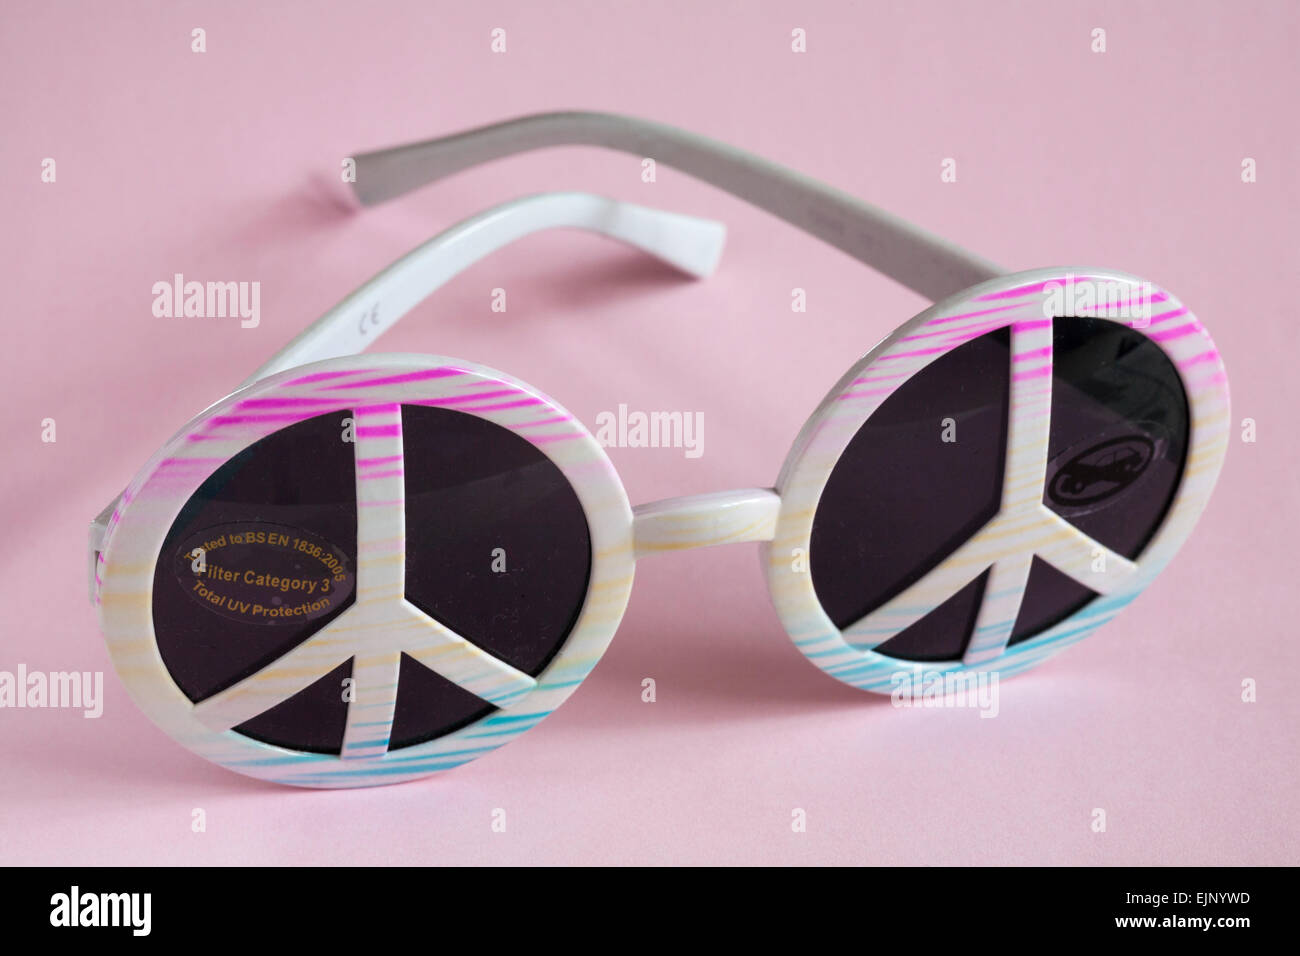 Sticker on sunglasses with peace symbols - tested to BSEN 1836 2005 Filter Category 3 Total UV Protection - Stock Image